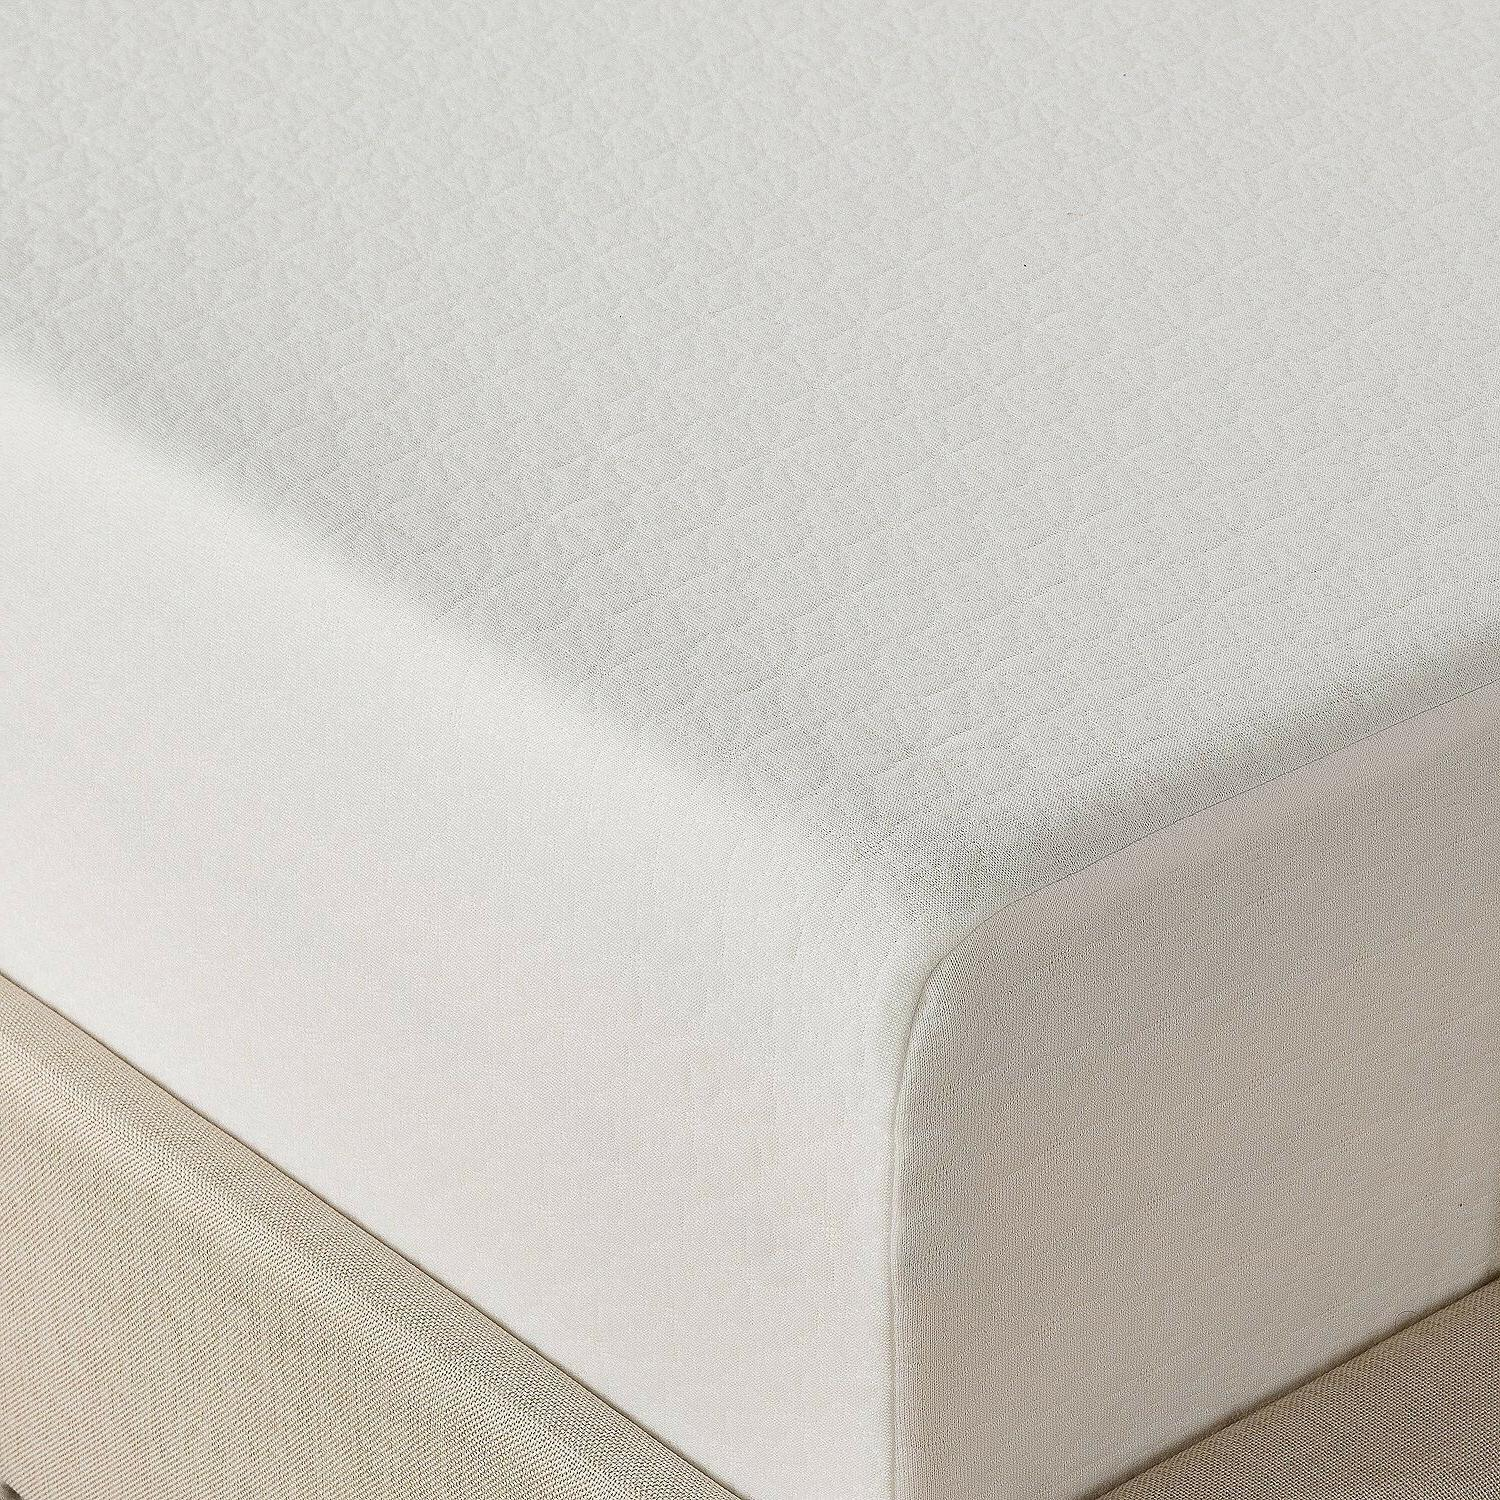 Best Price Mattress 10-Inch Memory